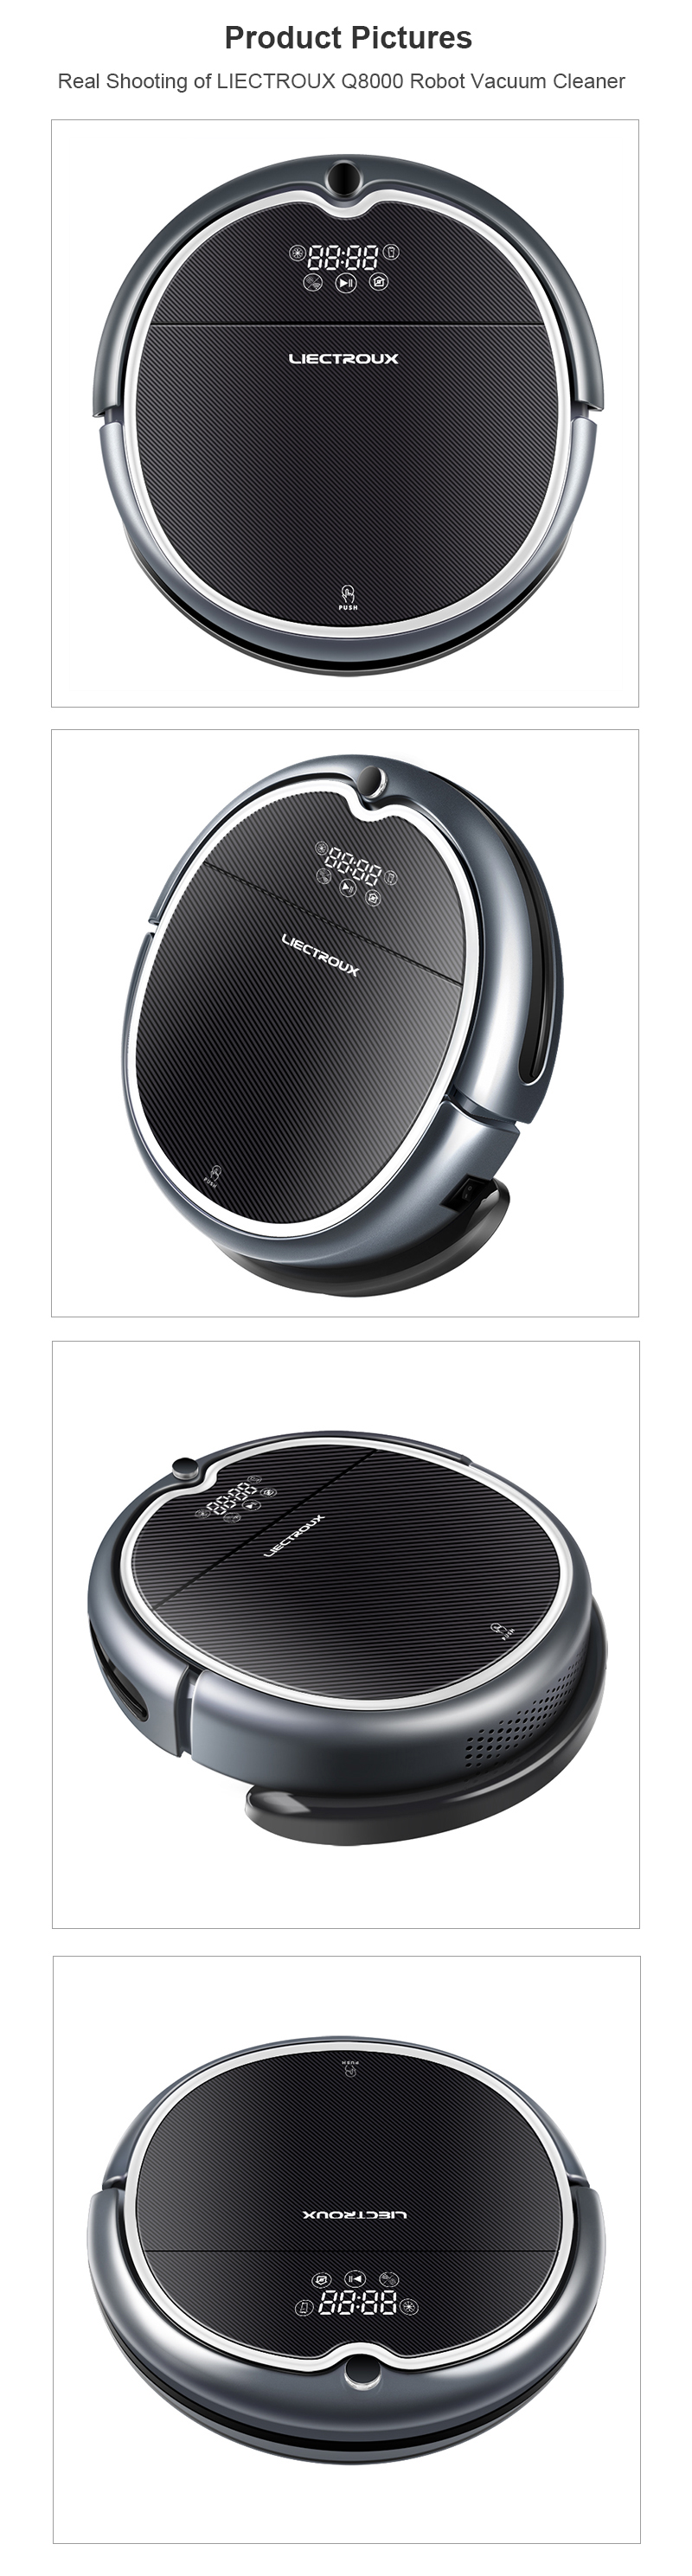 WIFI APP, 2D Map Navigation & Smart Memory Automatic Vacuum Cleaner Q8000